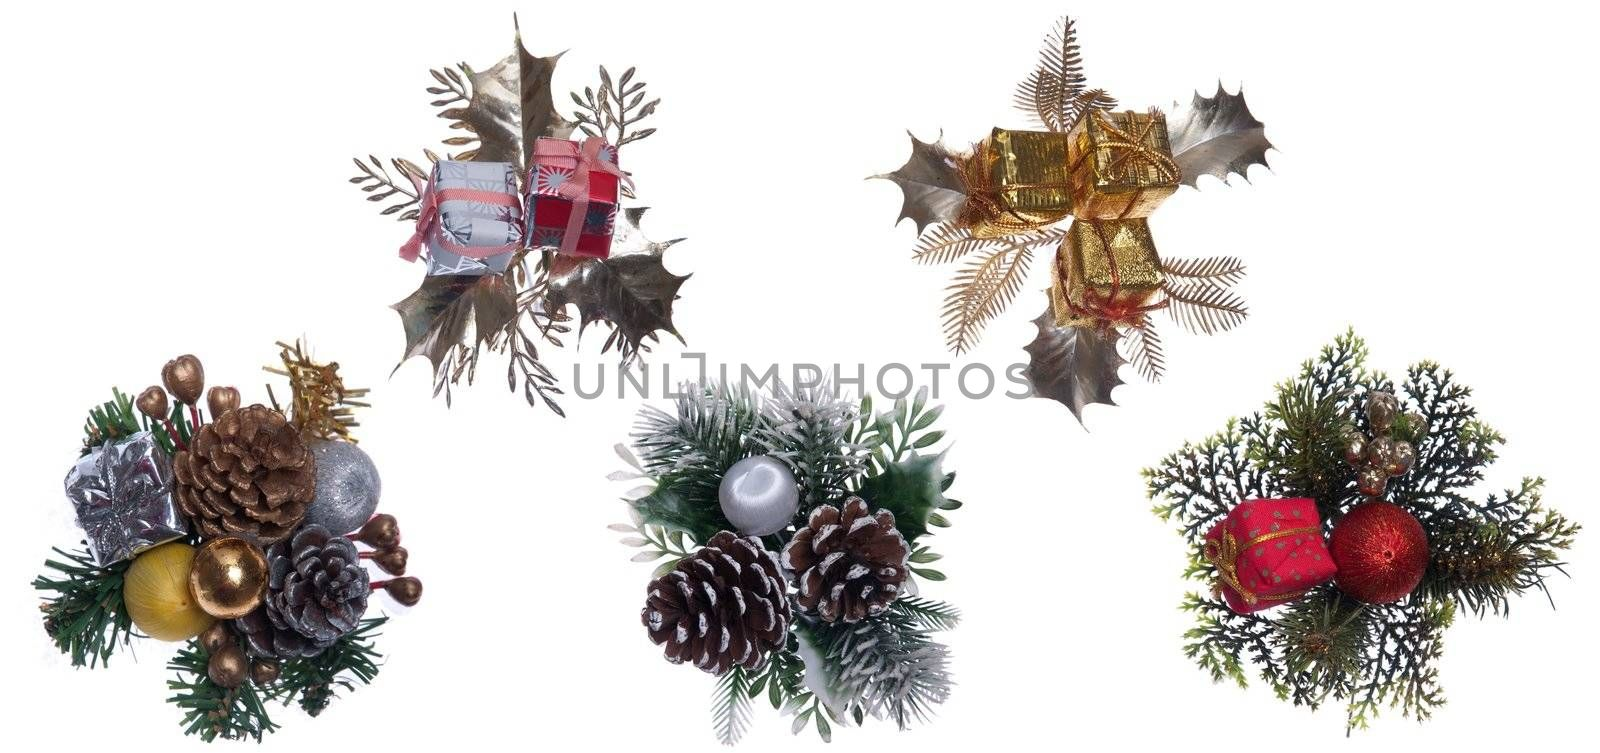 beautiful collection of Christmas decorations isolated on white background